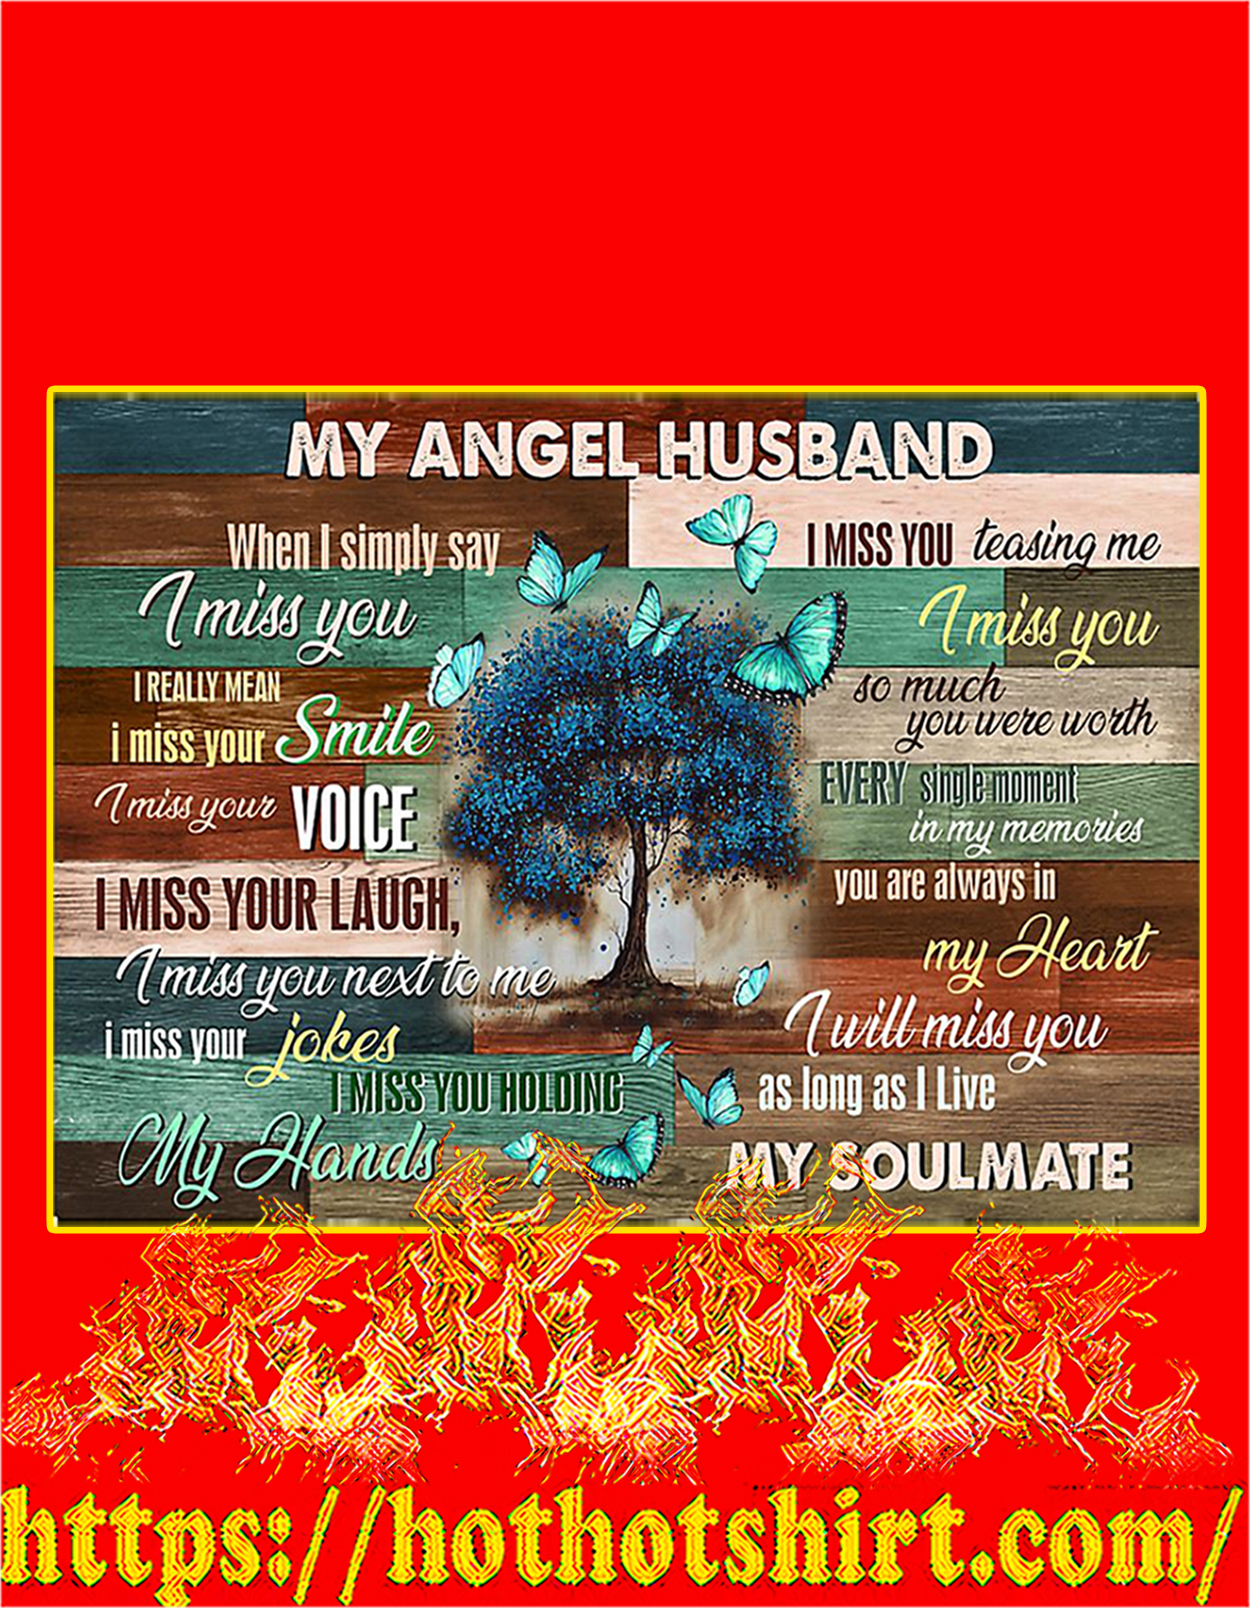 Butterfly my angel husband poster - A3